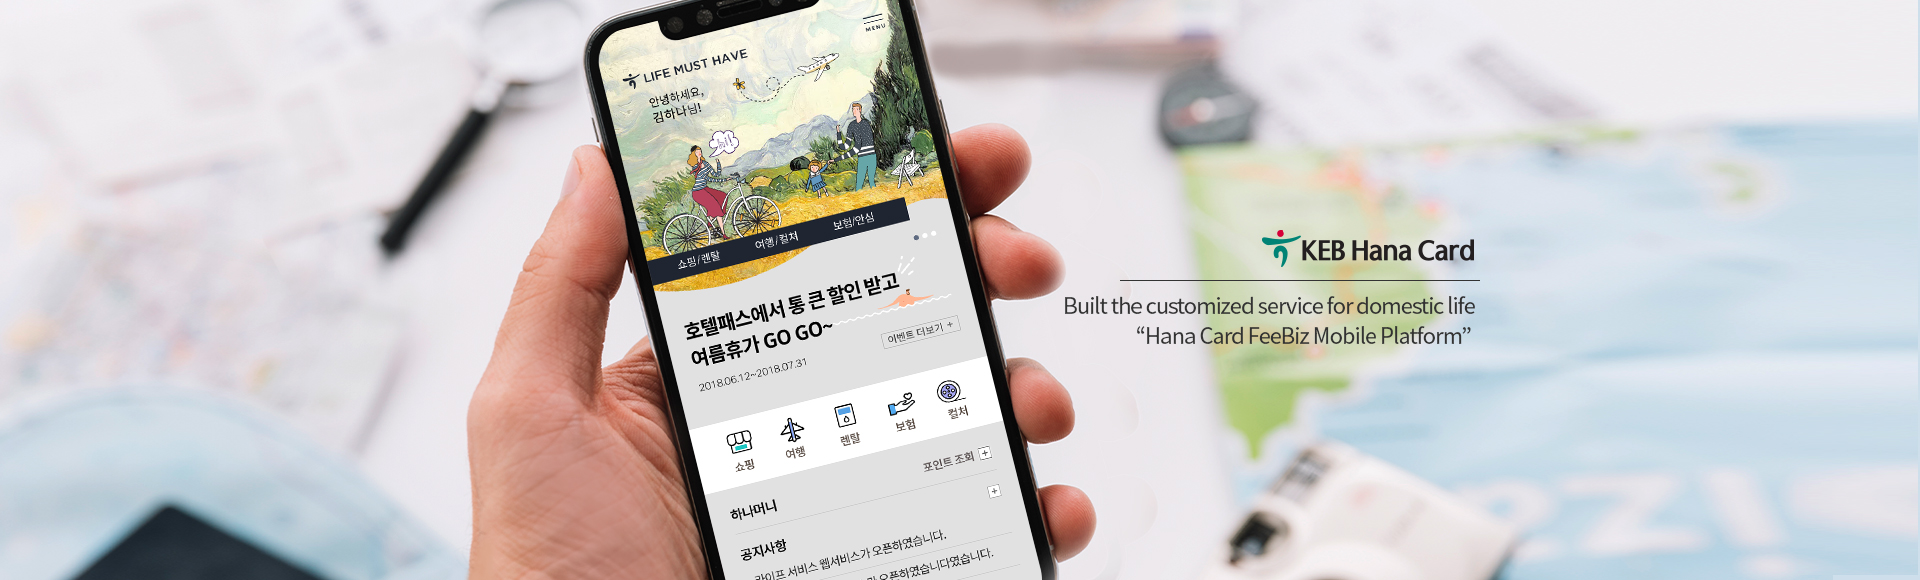 "Built the customized service for domestic life ""Hana Card FeeBiz Mobile Platform"""